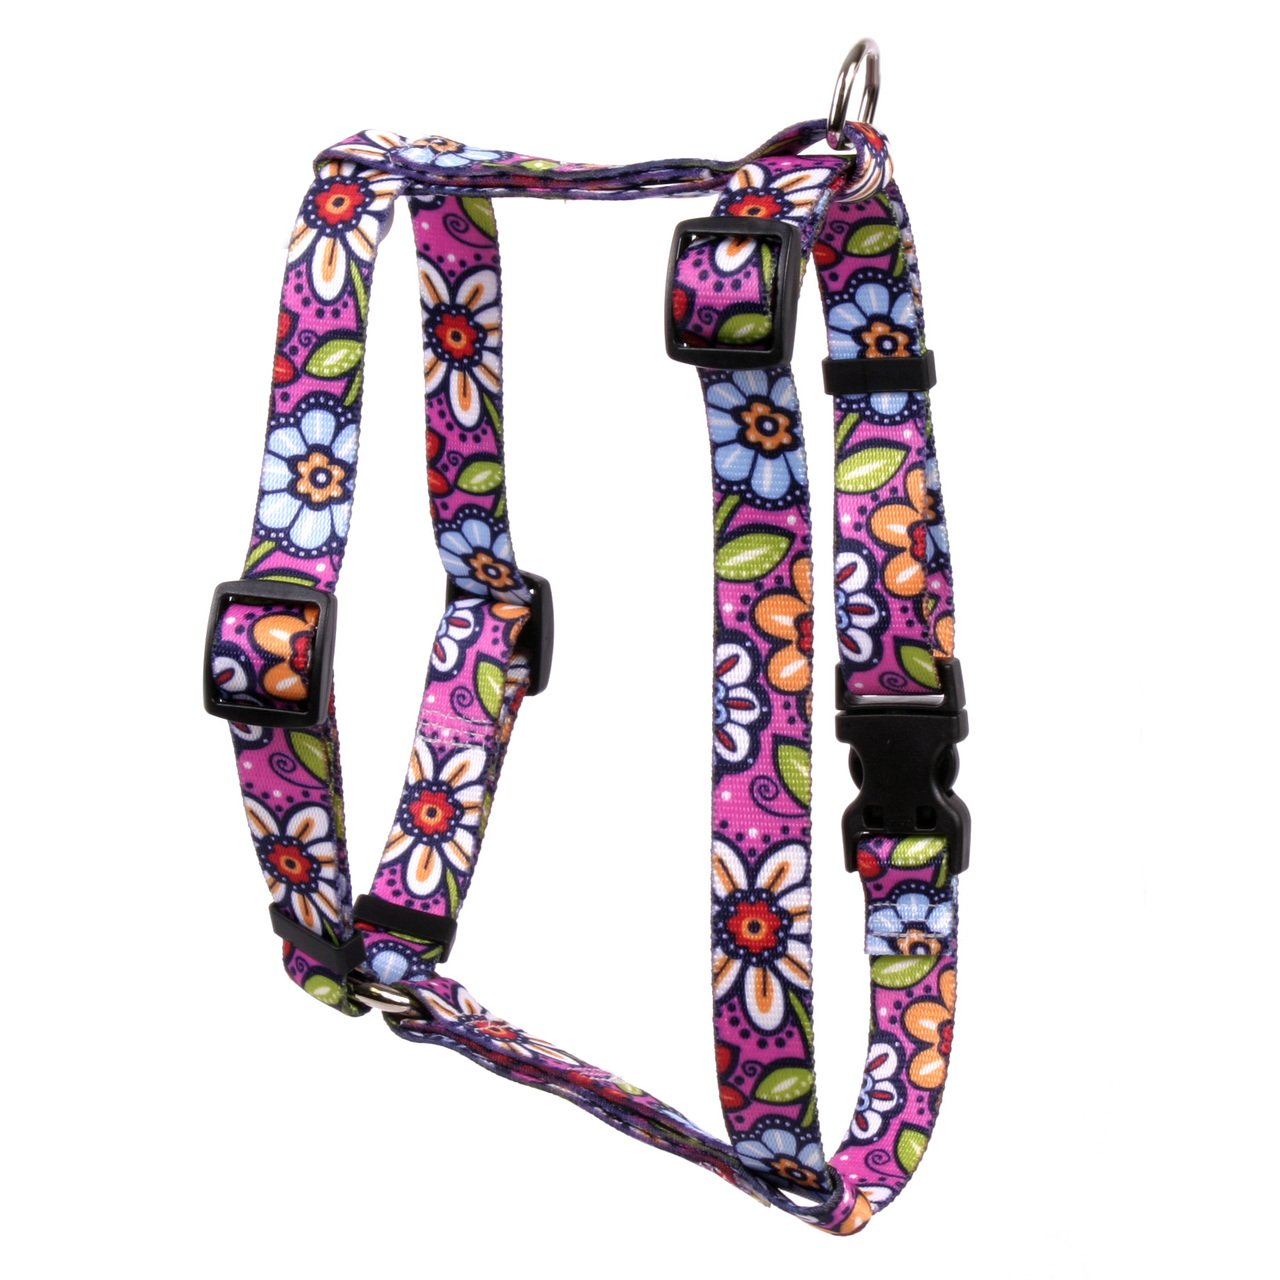 Yellow Dog Design Pink Garden Roman Style H Dog Harness, Large-1'' Wide and fits Chest of 20 to 28'' by Yellow Dog Design